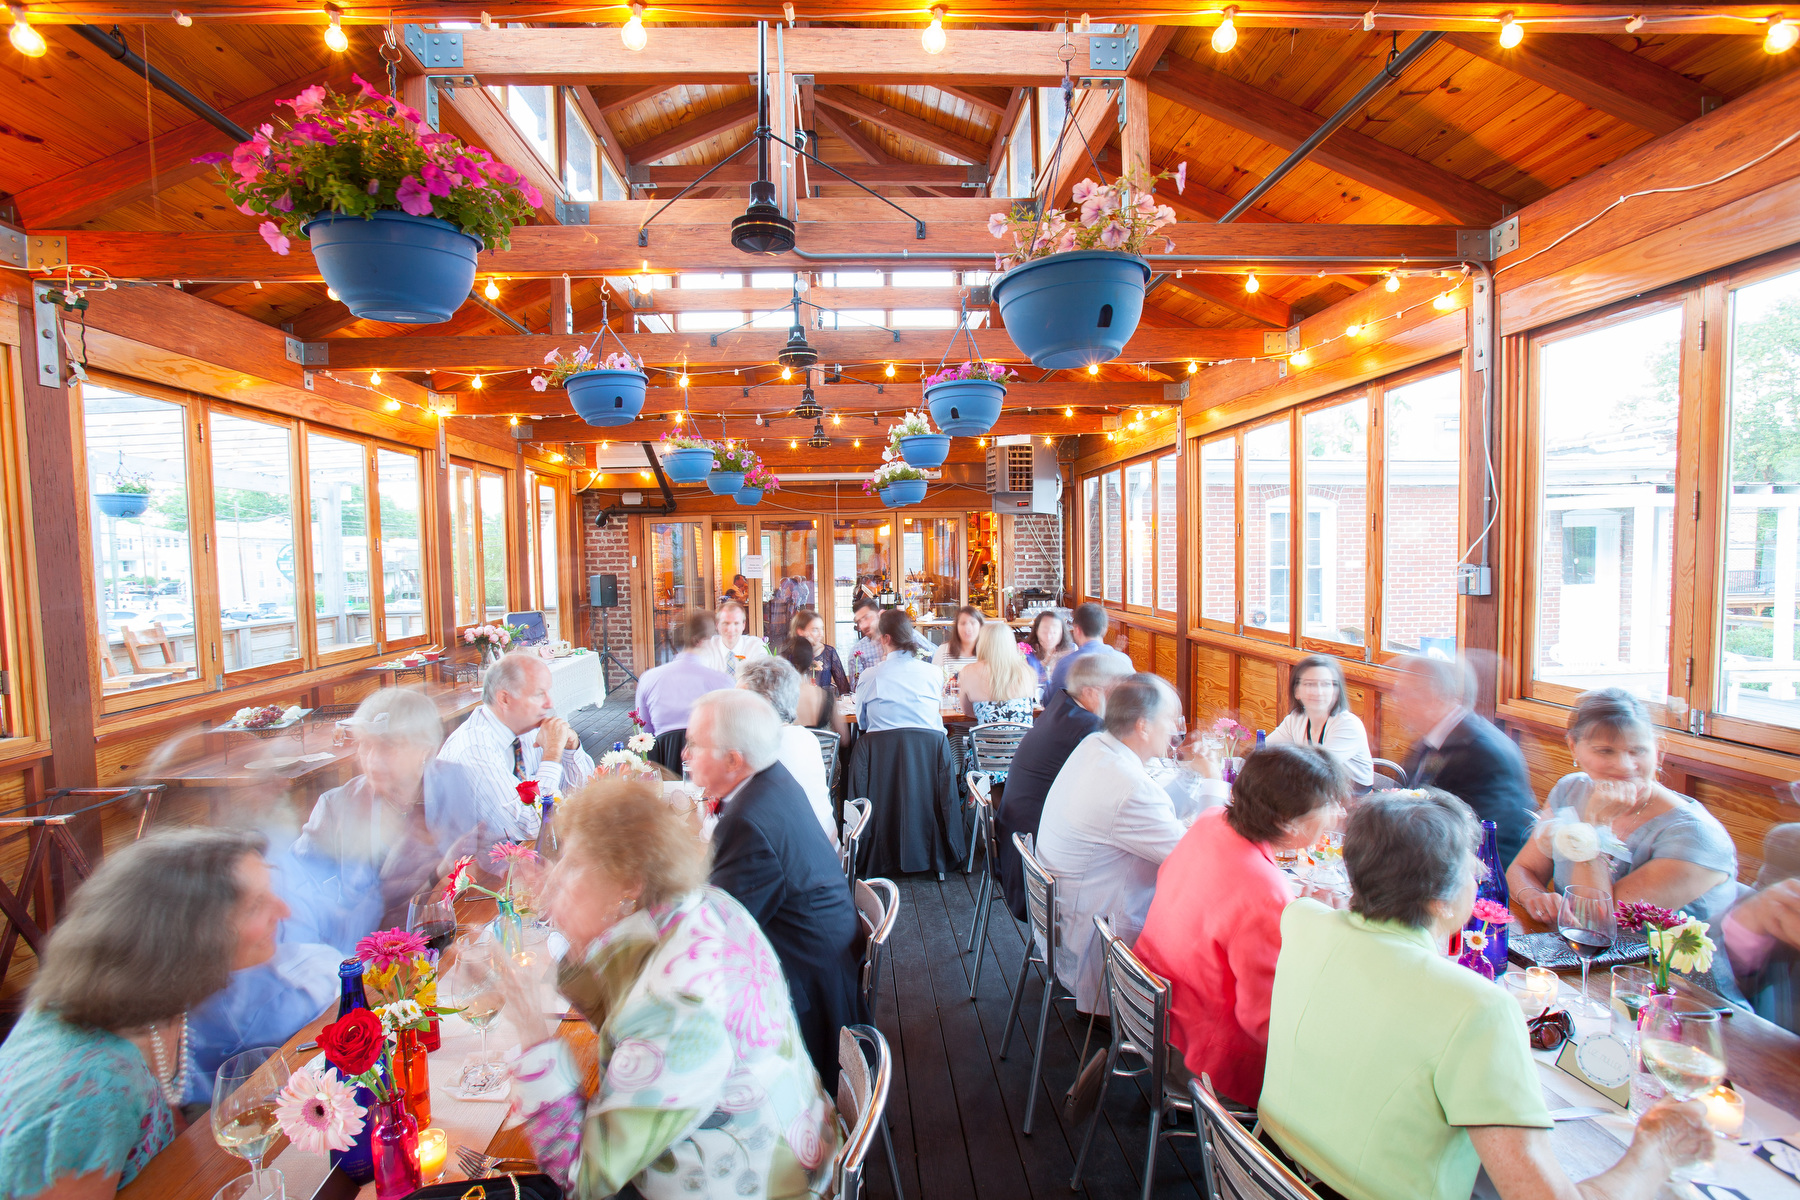 The Local, a Charlottesville restaurant, hosts a wedding reception.